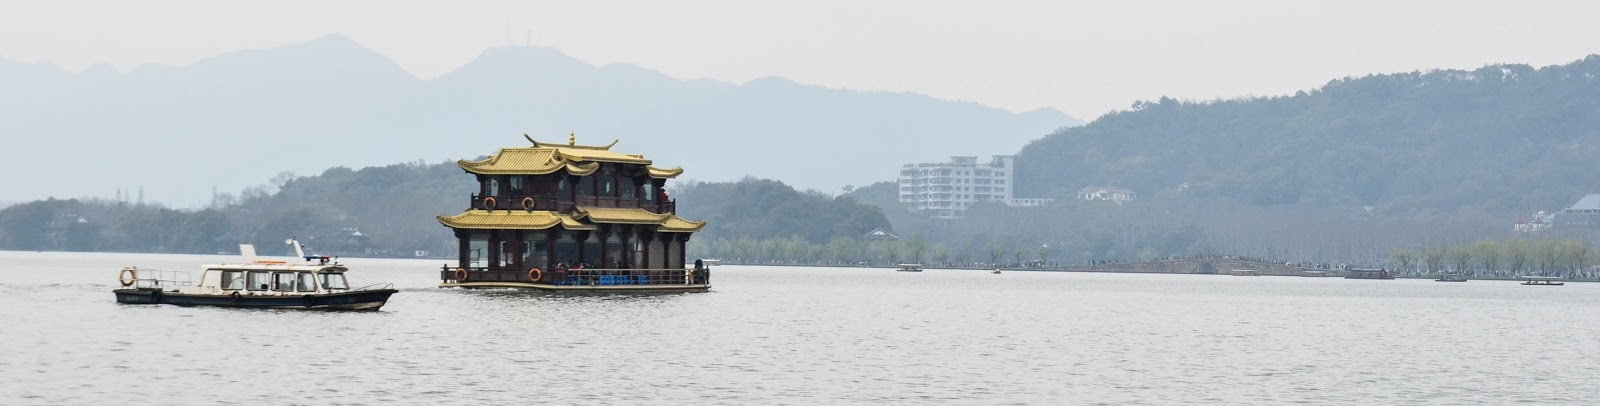 typical chinese boat in lake of hangzhou